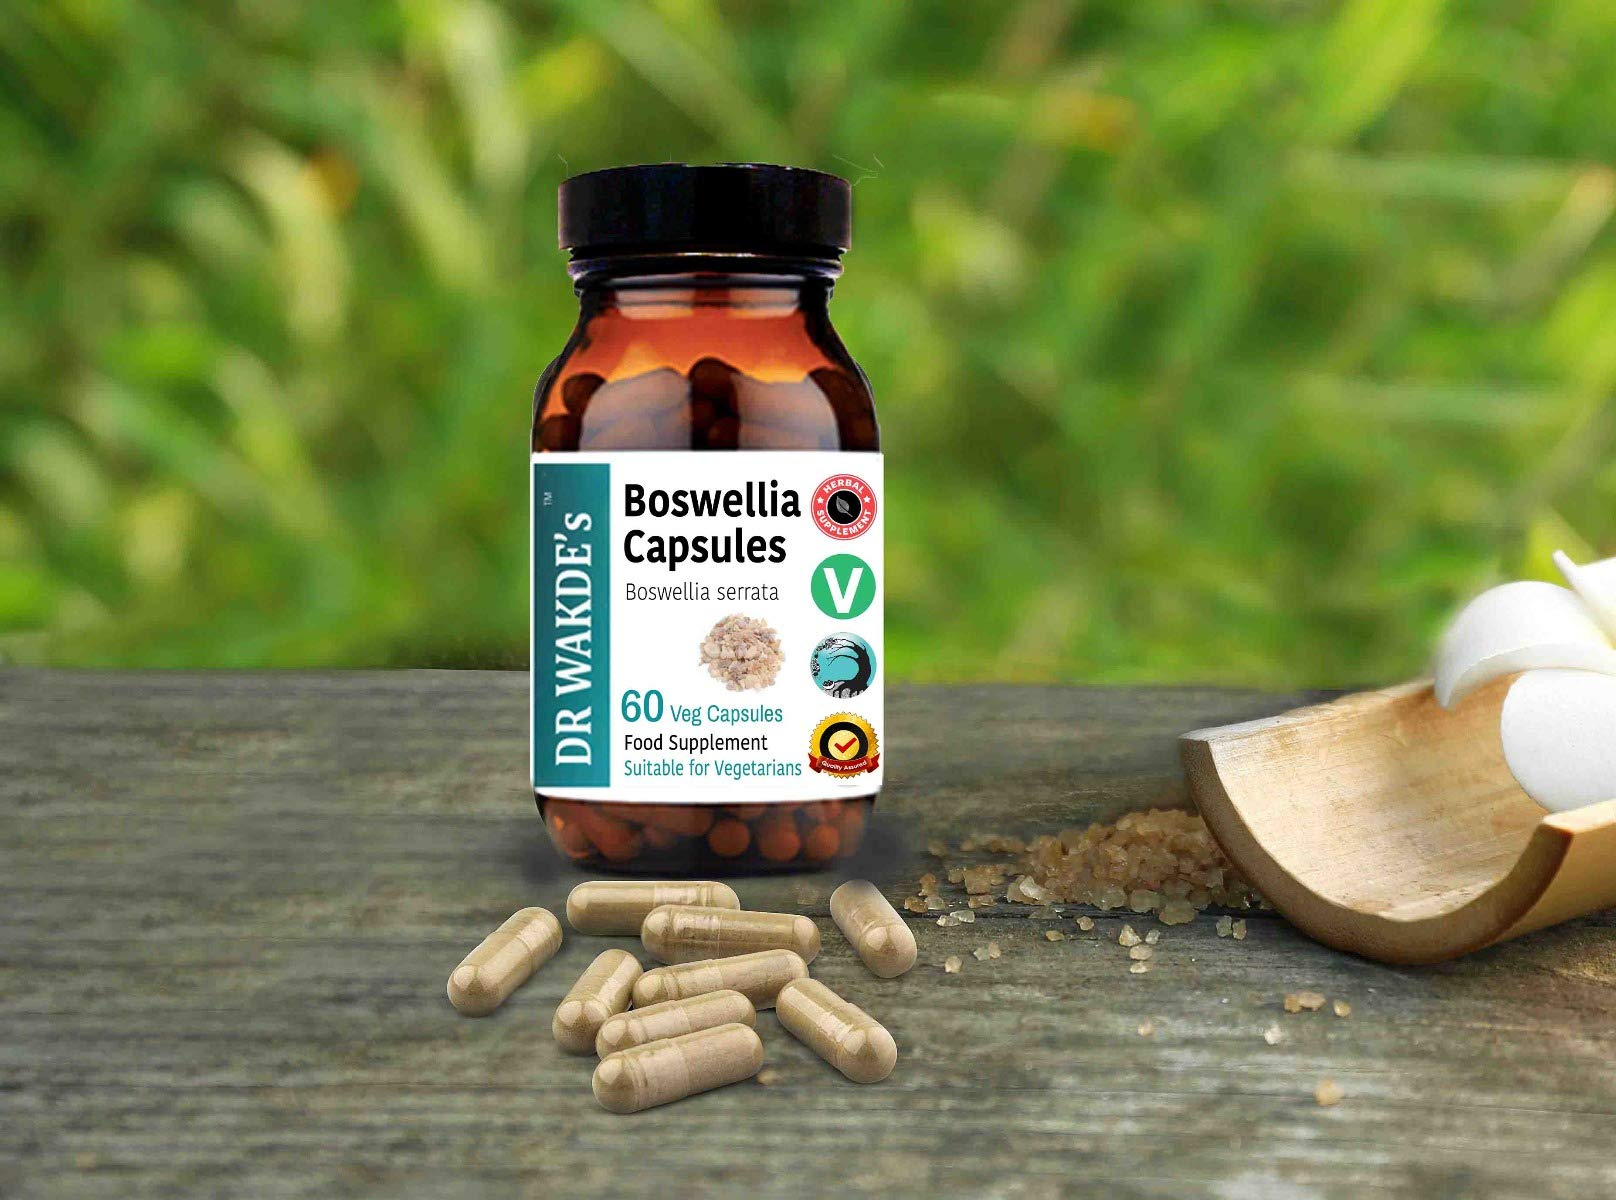 DR WAKDE'S® Boswellia Capsules (Salai Guggul/Shallaki) I 100% Herbal I 60 Veggie Capsules I Ayurvedic Supplement I FREE SHIPPING on multiples I Quantity Discounts I Same Day Dispatch by DR WAKDE'S® Natural Health Care, London